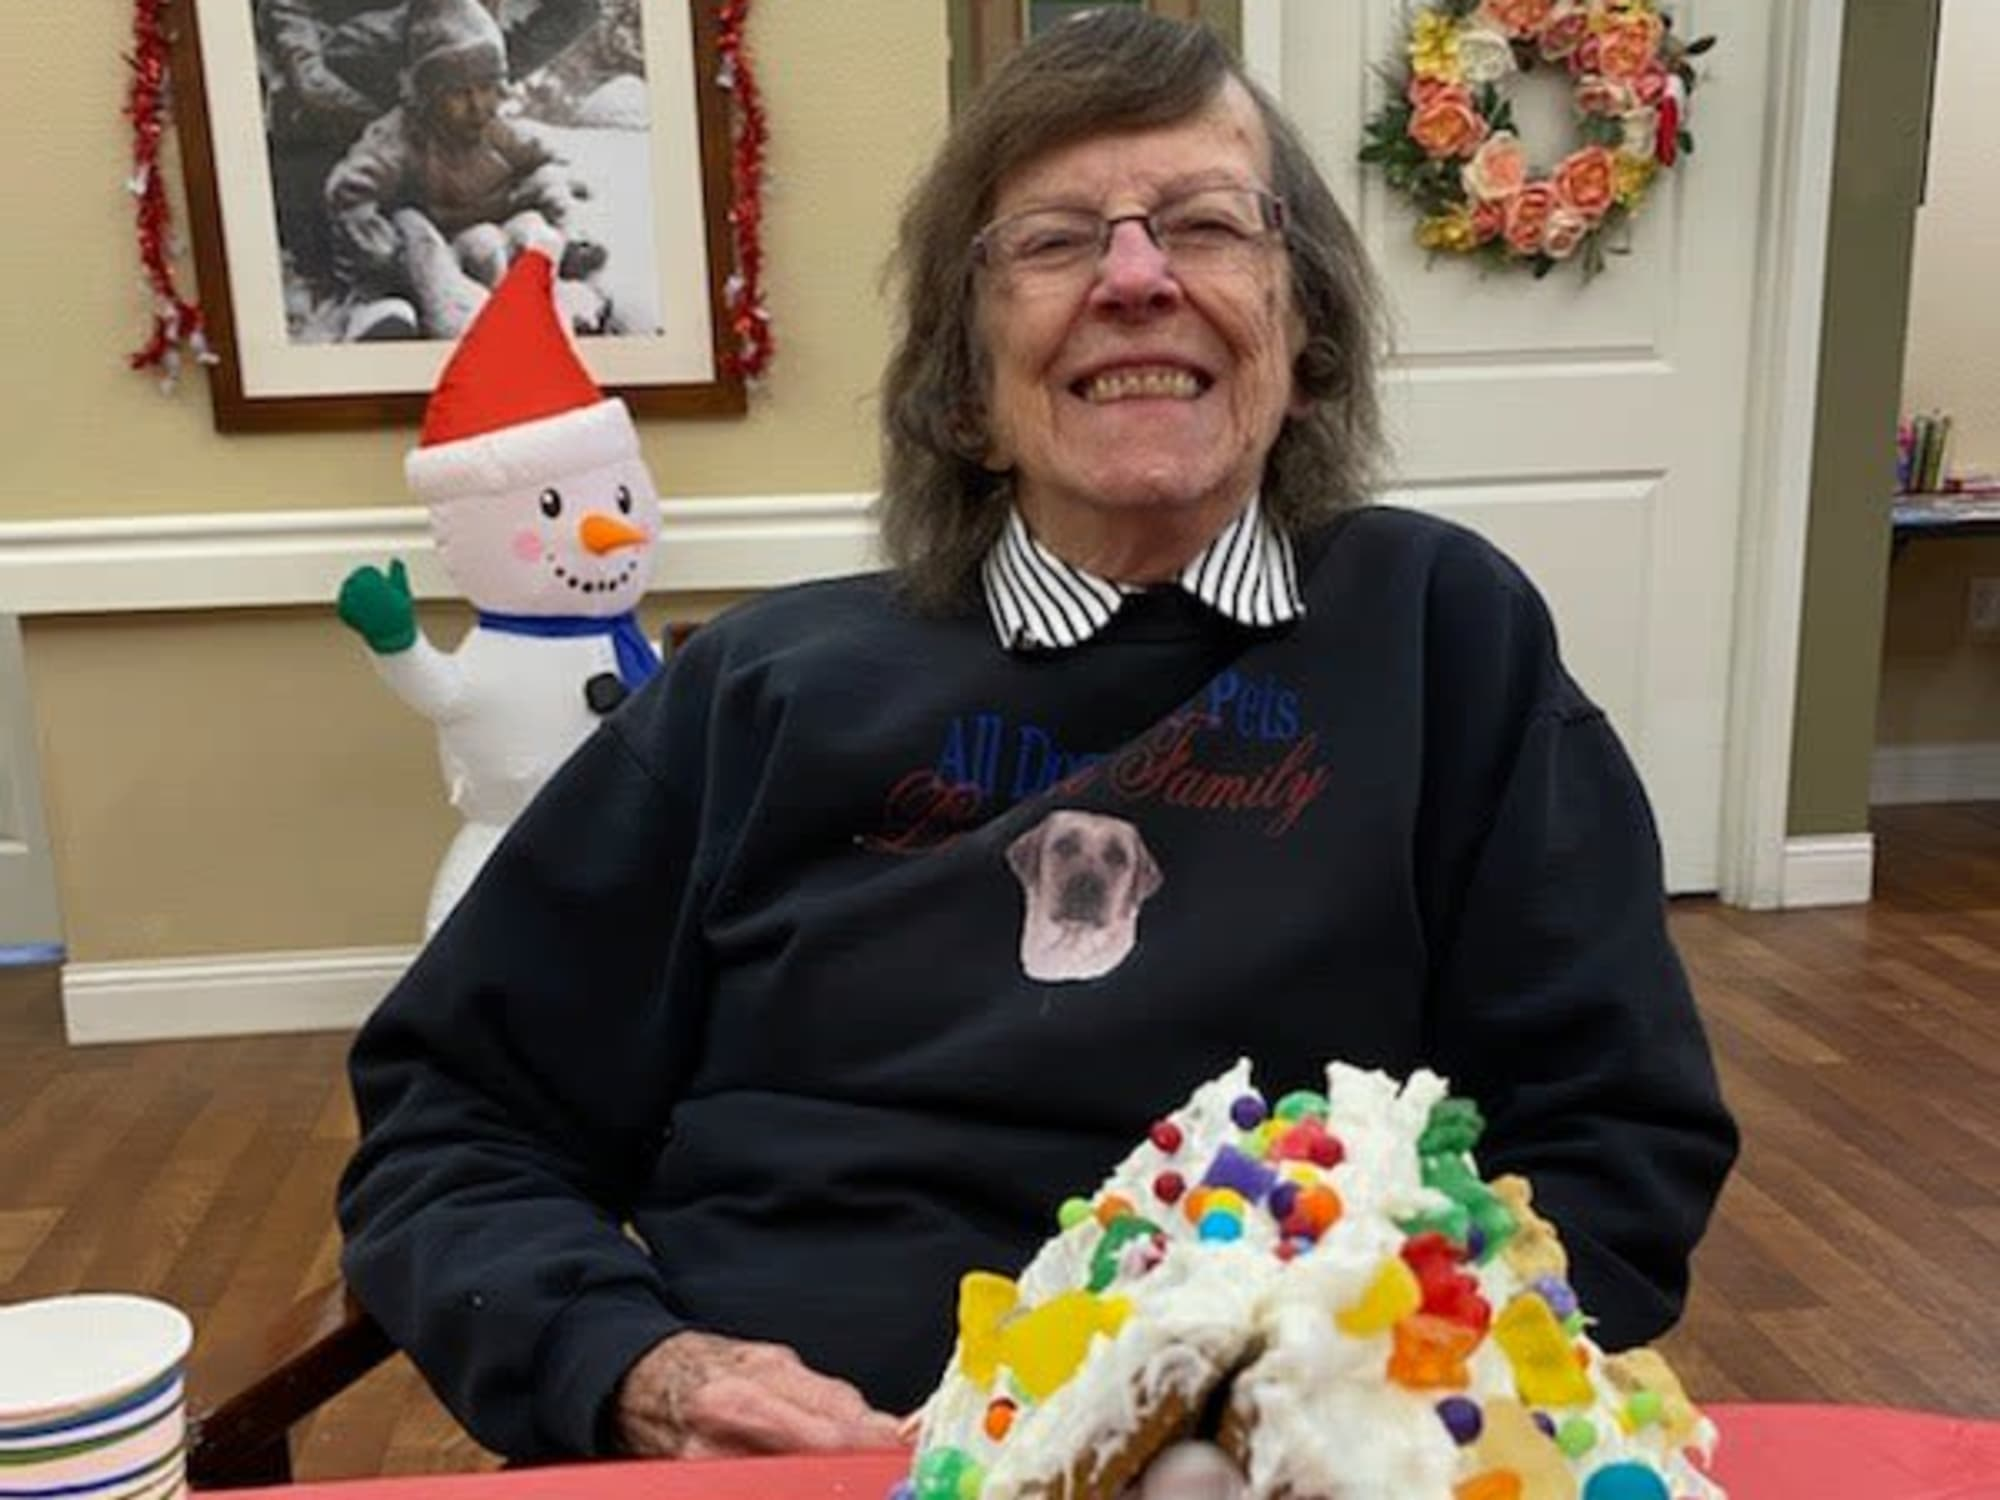 Decorating ginger bread houses at Seven Lakes Memory Care in Loveland, Colorado